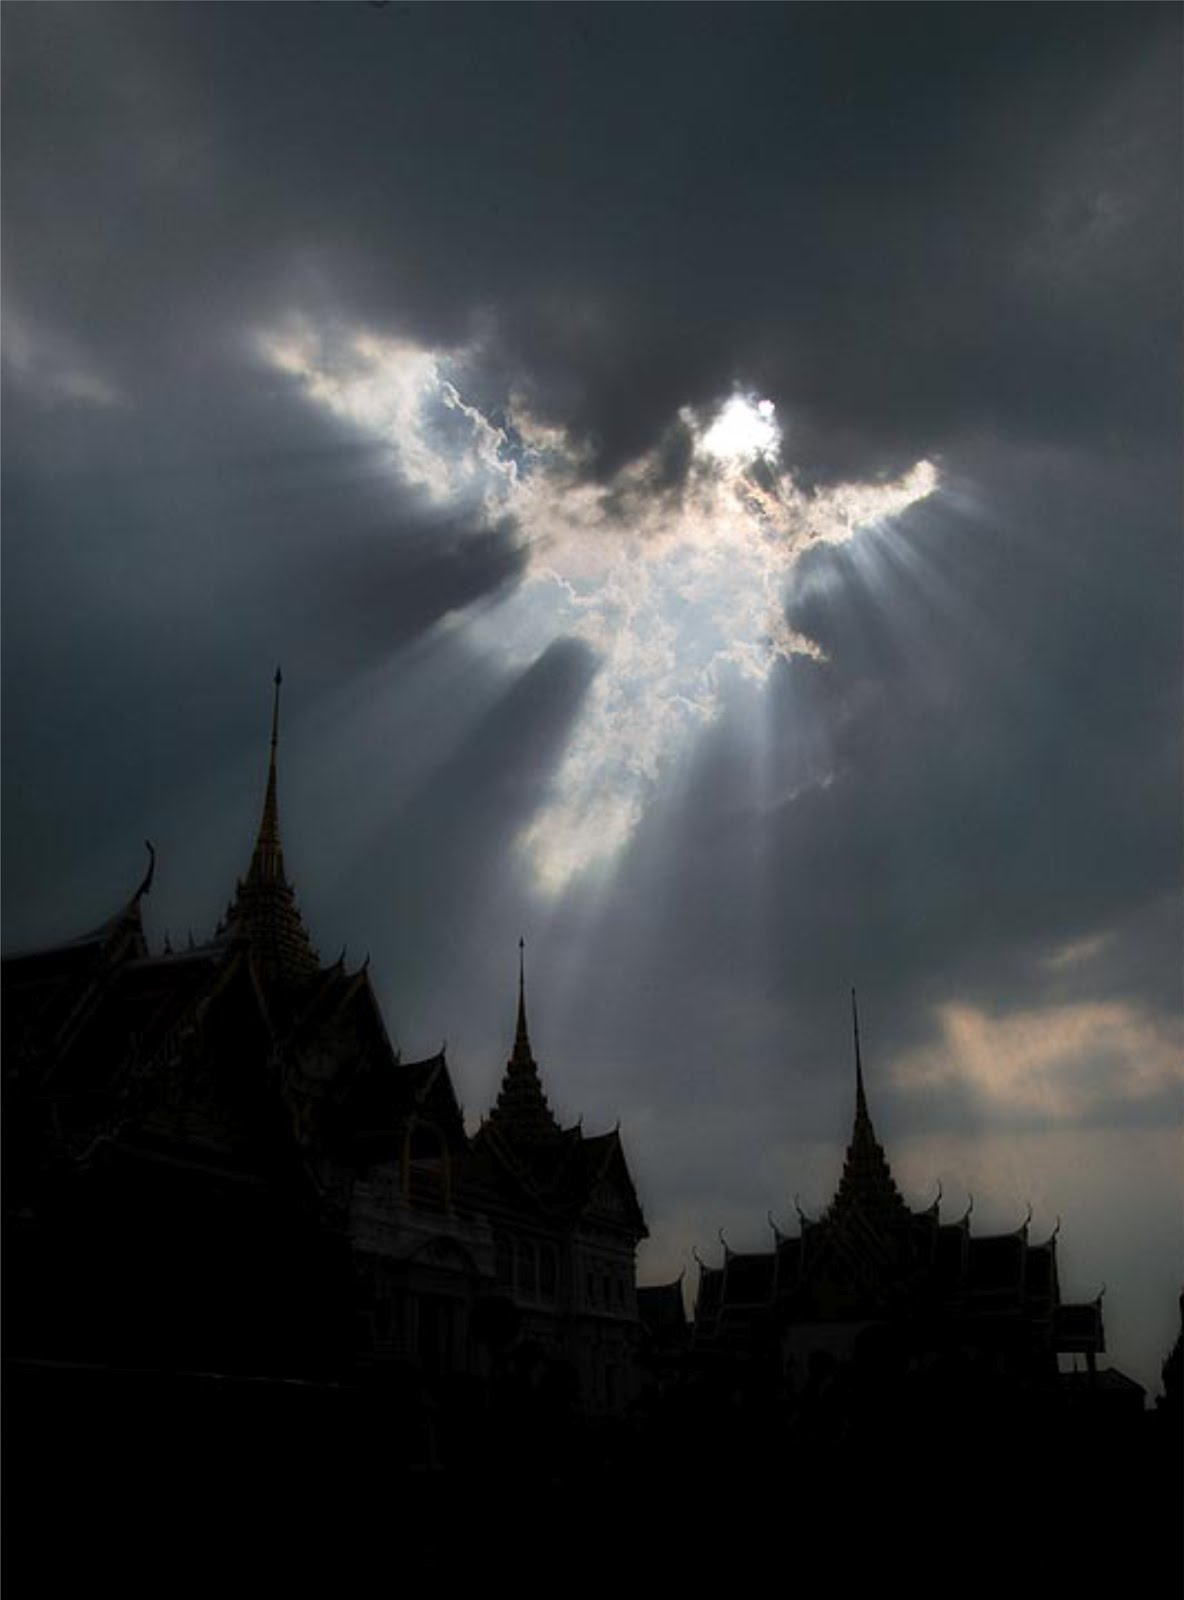 angel flying up to heaven - photo #38